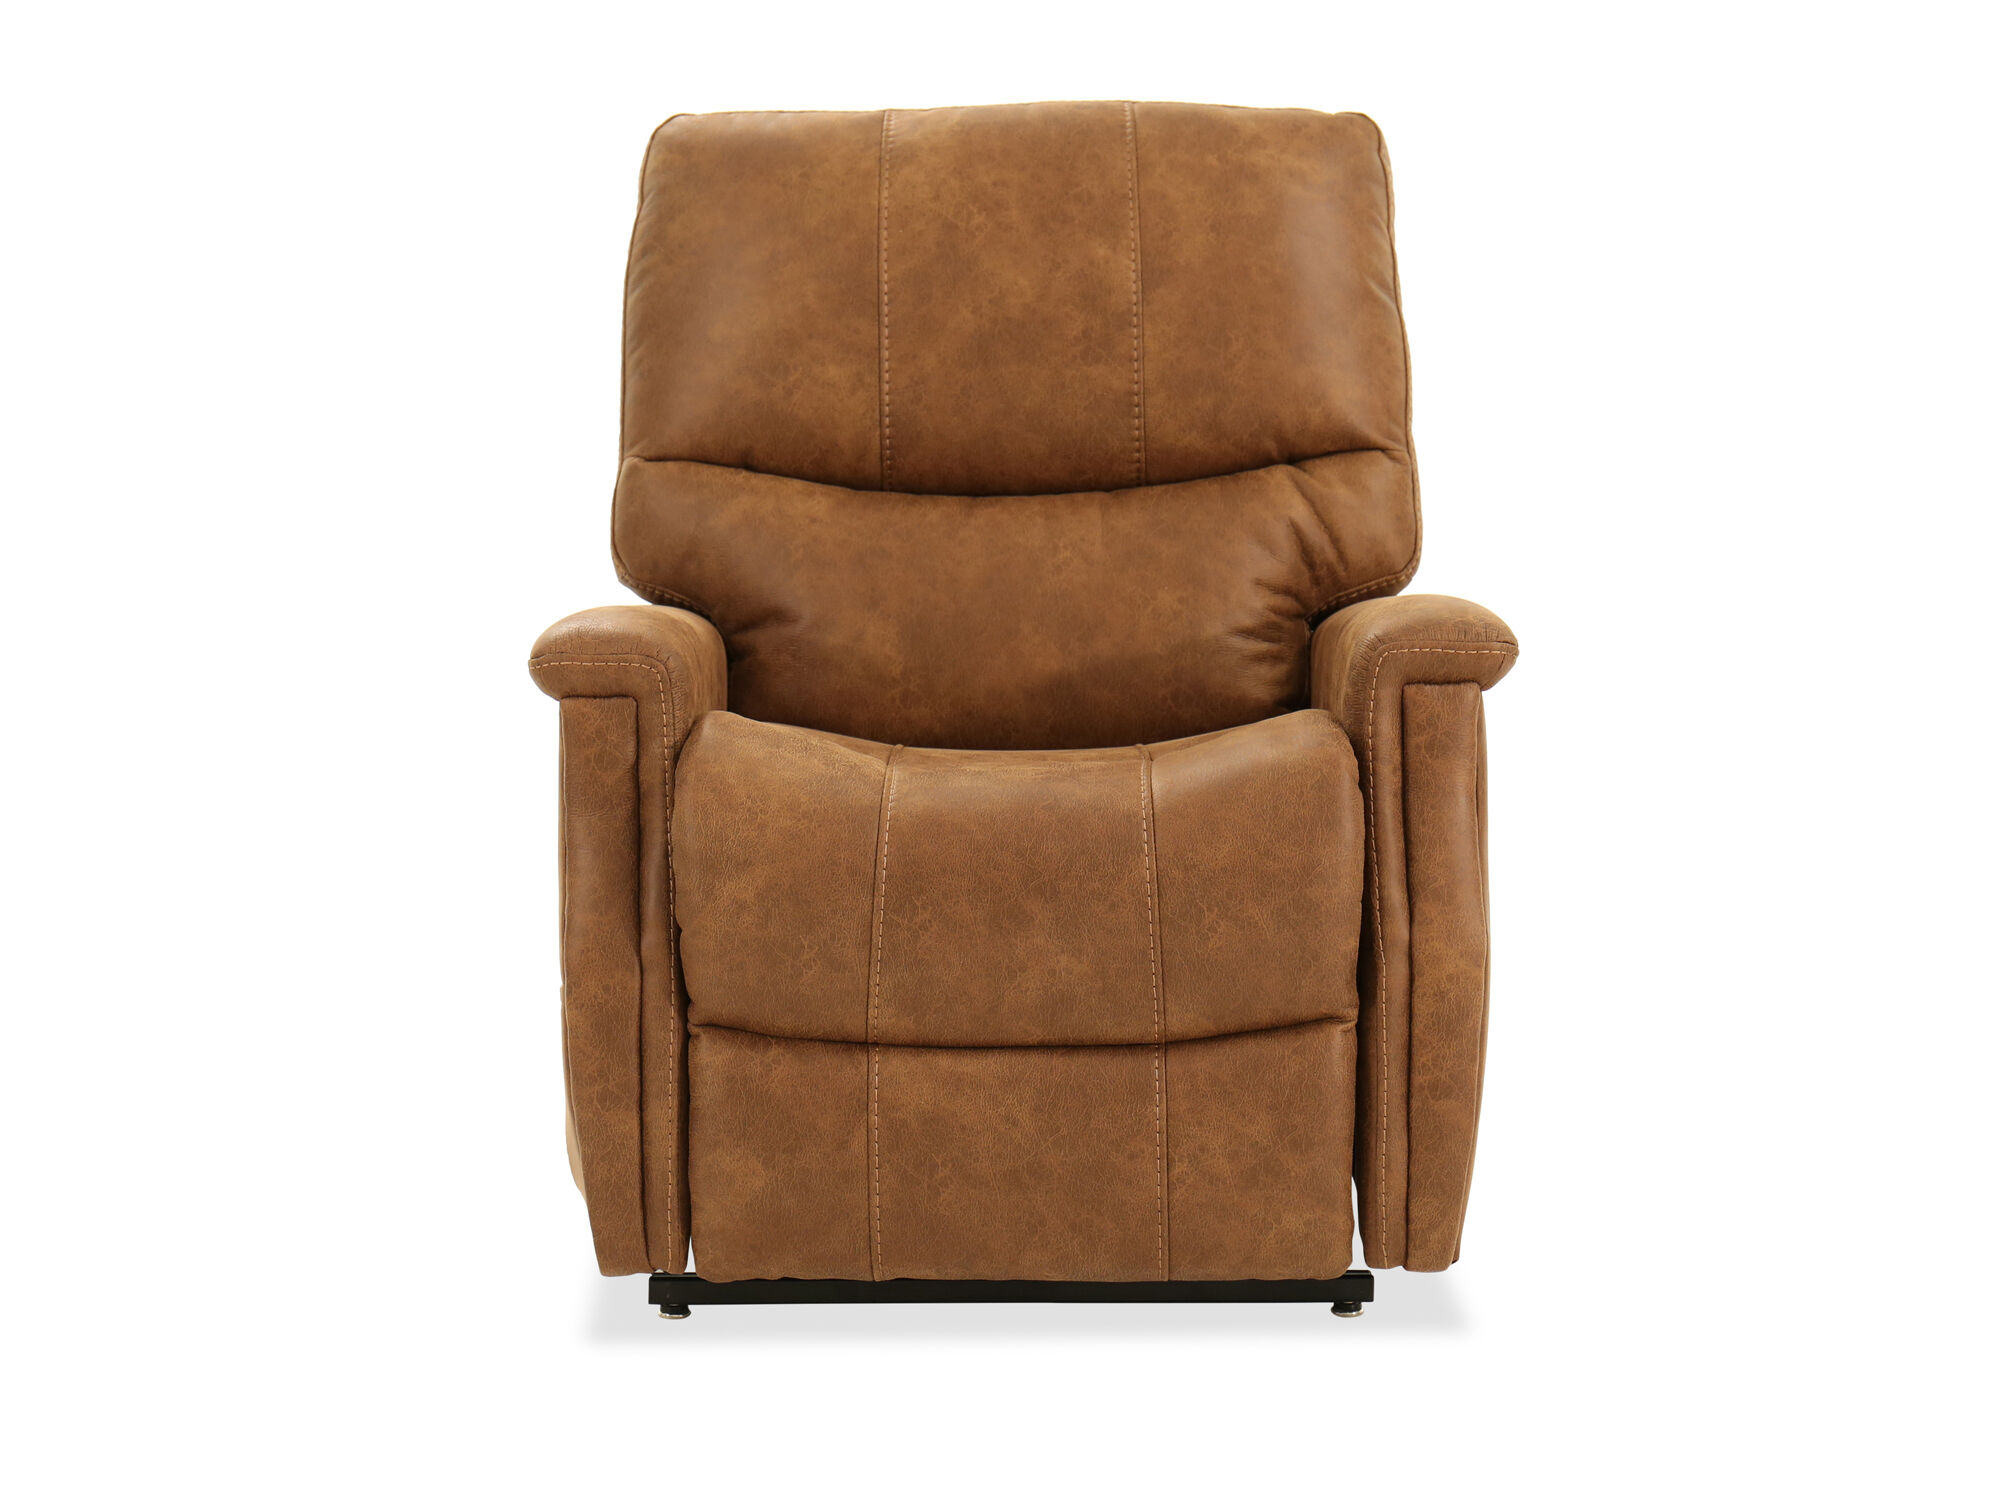 Images Remote Controlled Leather 34.5u0026#39;u0026#39; Power Lift Chair In